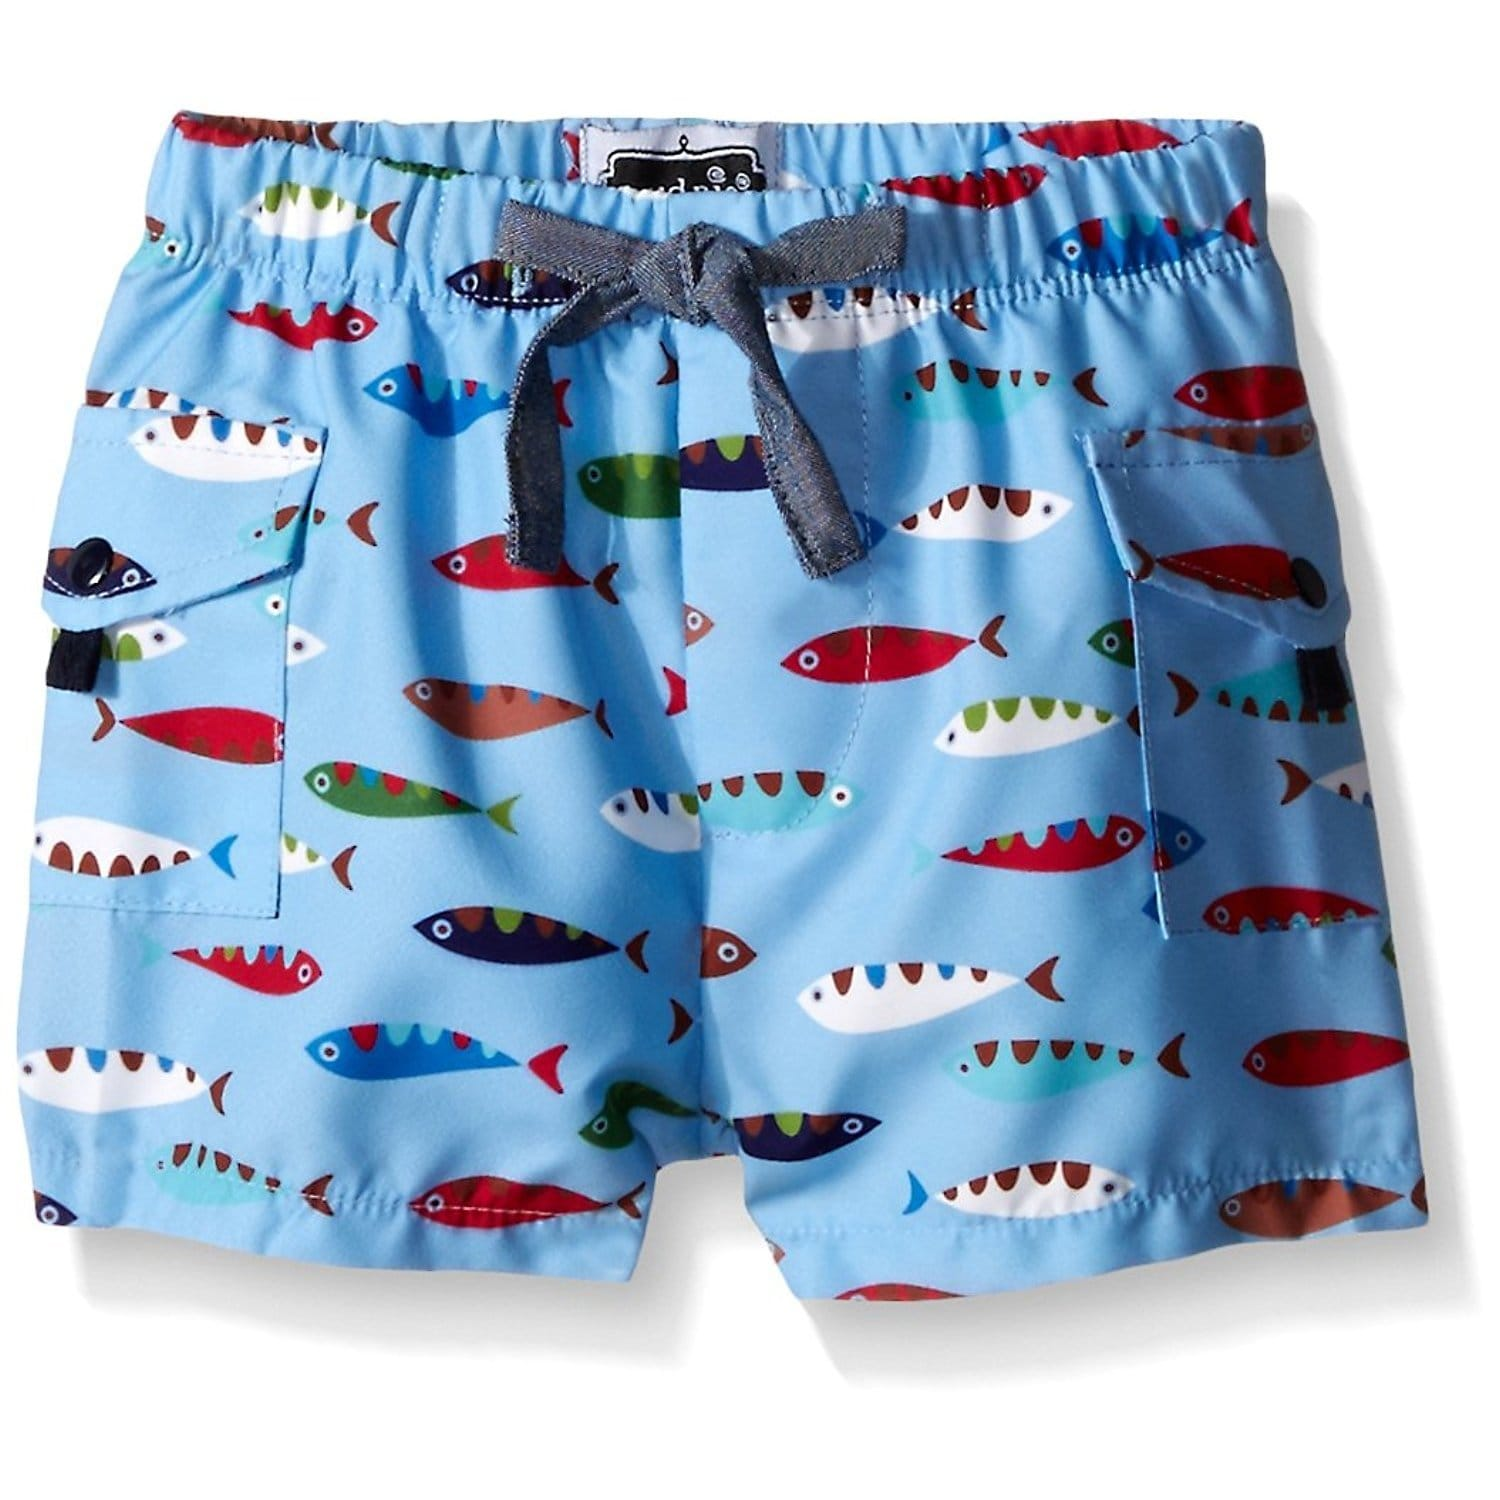 246524df00 Shop MUD PIE Boys Swim Trunks - Free Shipping On Orders Over $45 -  Overstock - 17127703